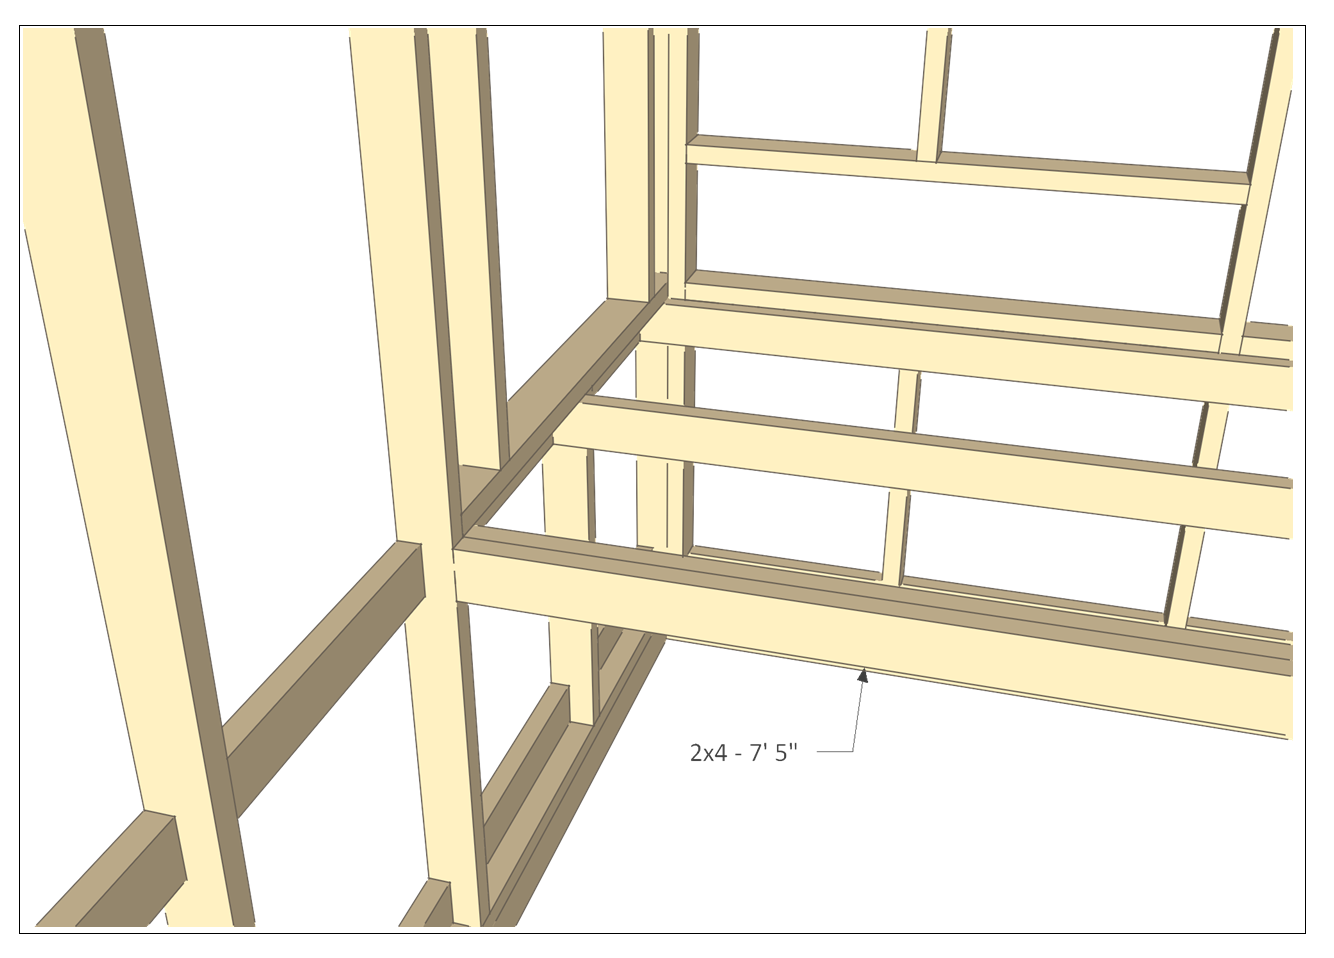 8x10 chicken coop plans - coop floor joist 2.